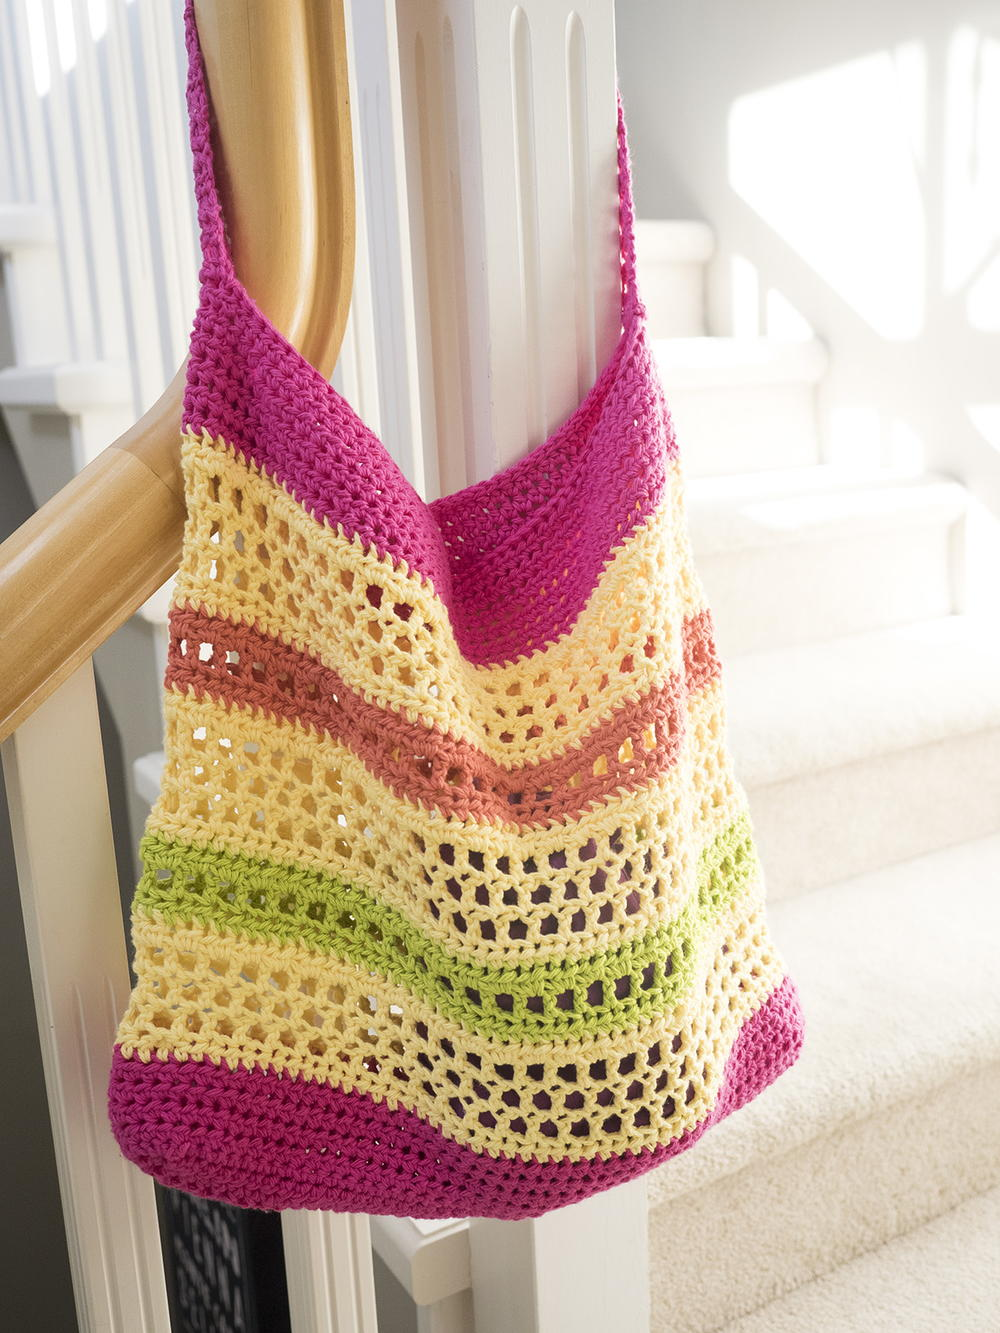 Crochet Beach Tote Bag AllFreeCrochet.com